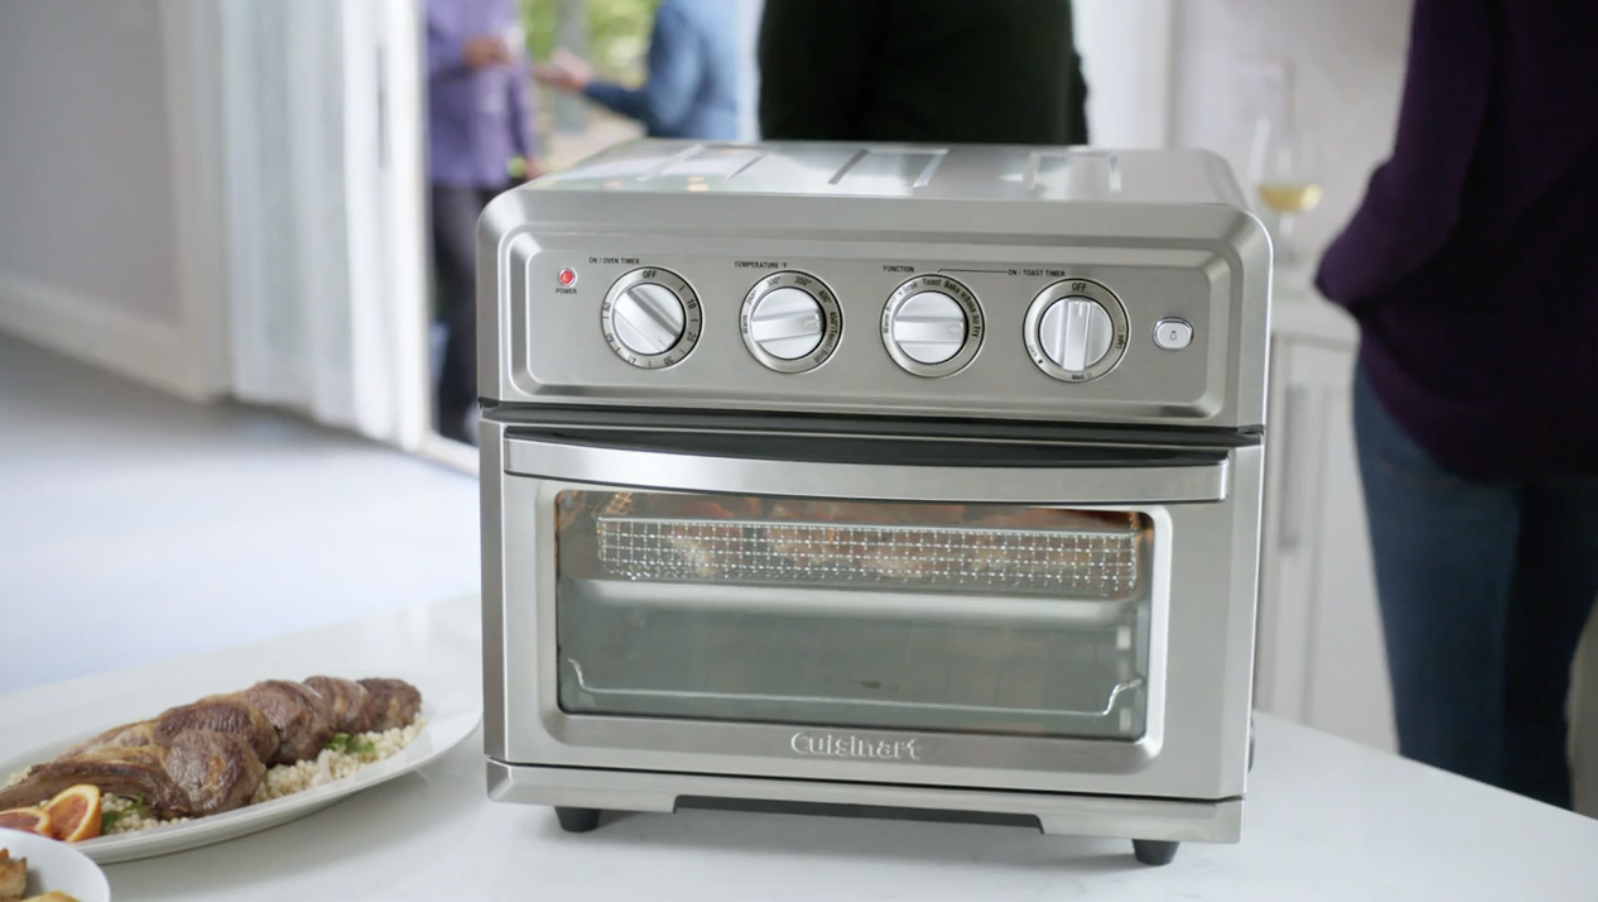 The toaster/ air fryer